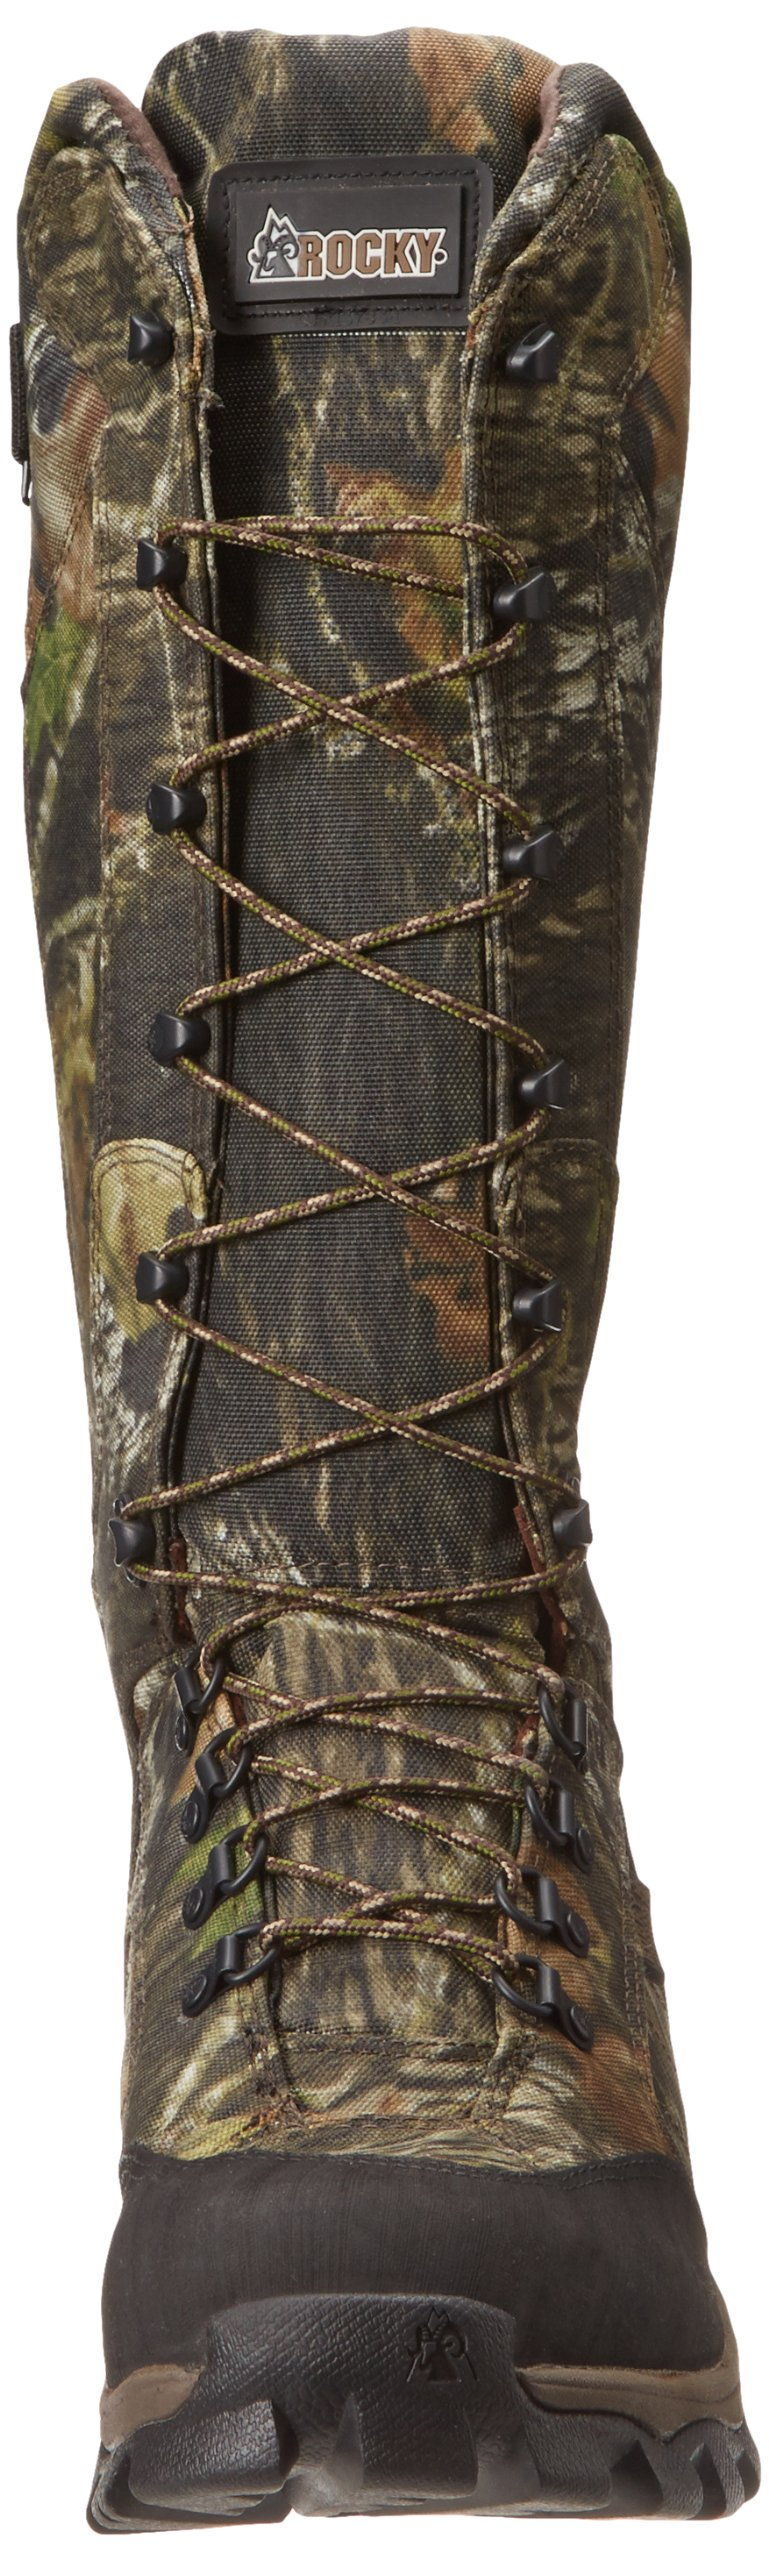 Rocky Men's Lynx Snake Boot Hunting Boot,Mobu,10 M US by Rocky (Image #4)